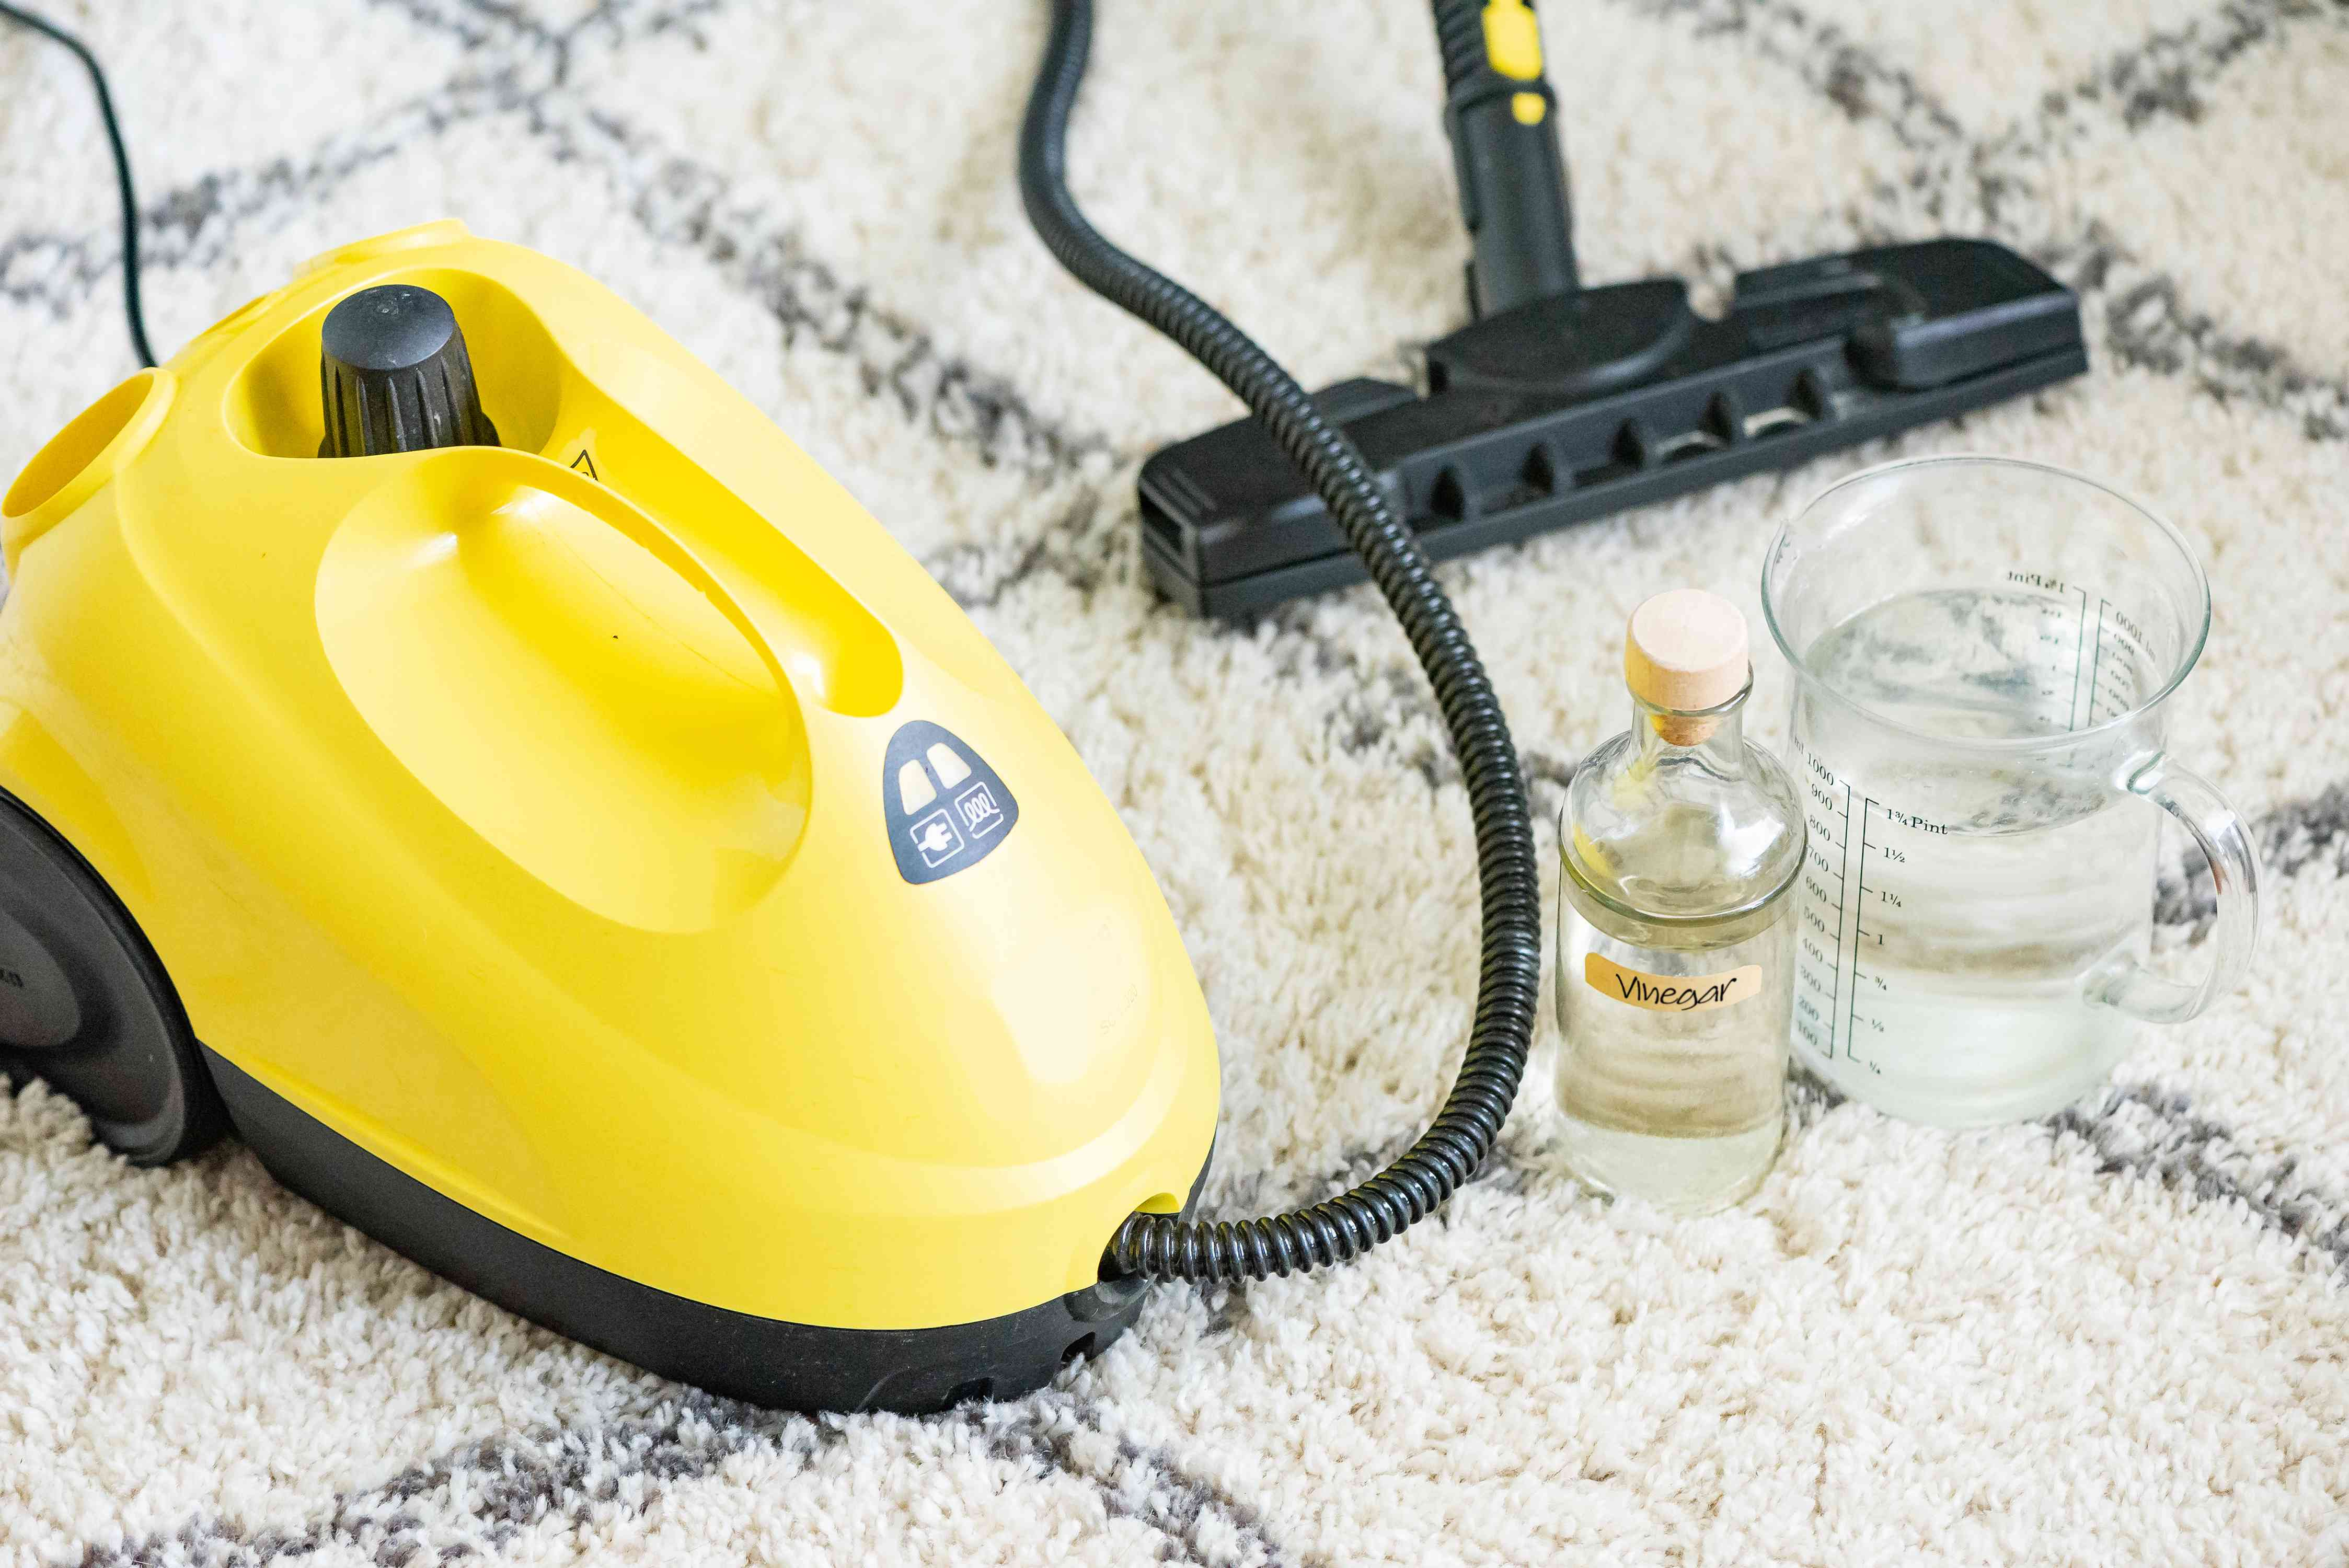 using a steam cleaner on a carpet